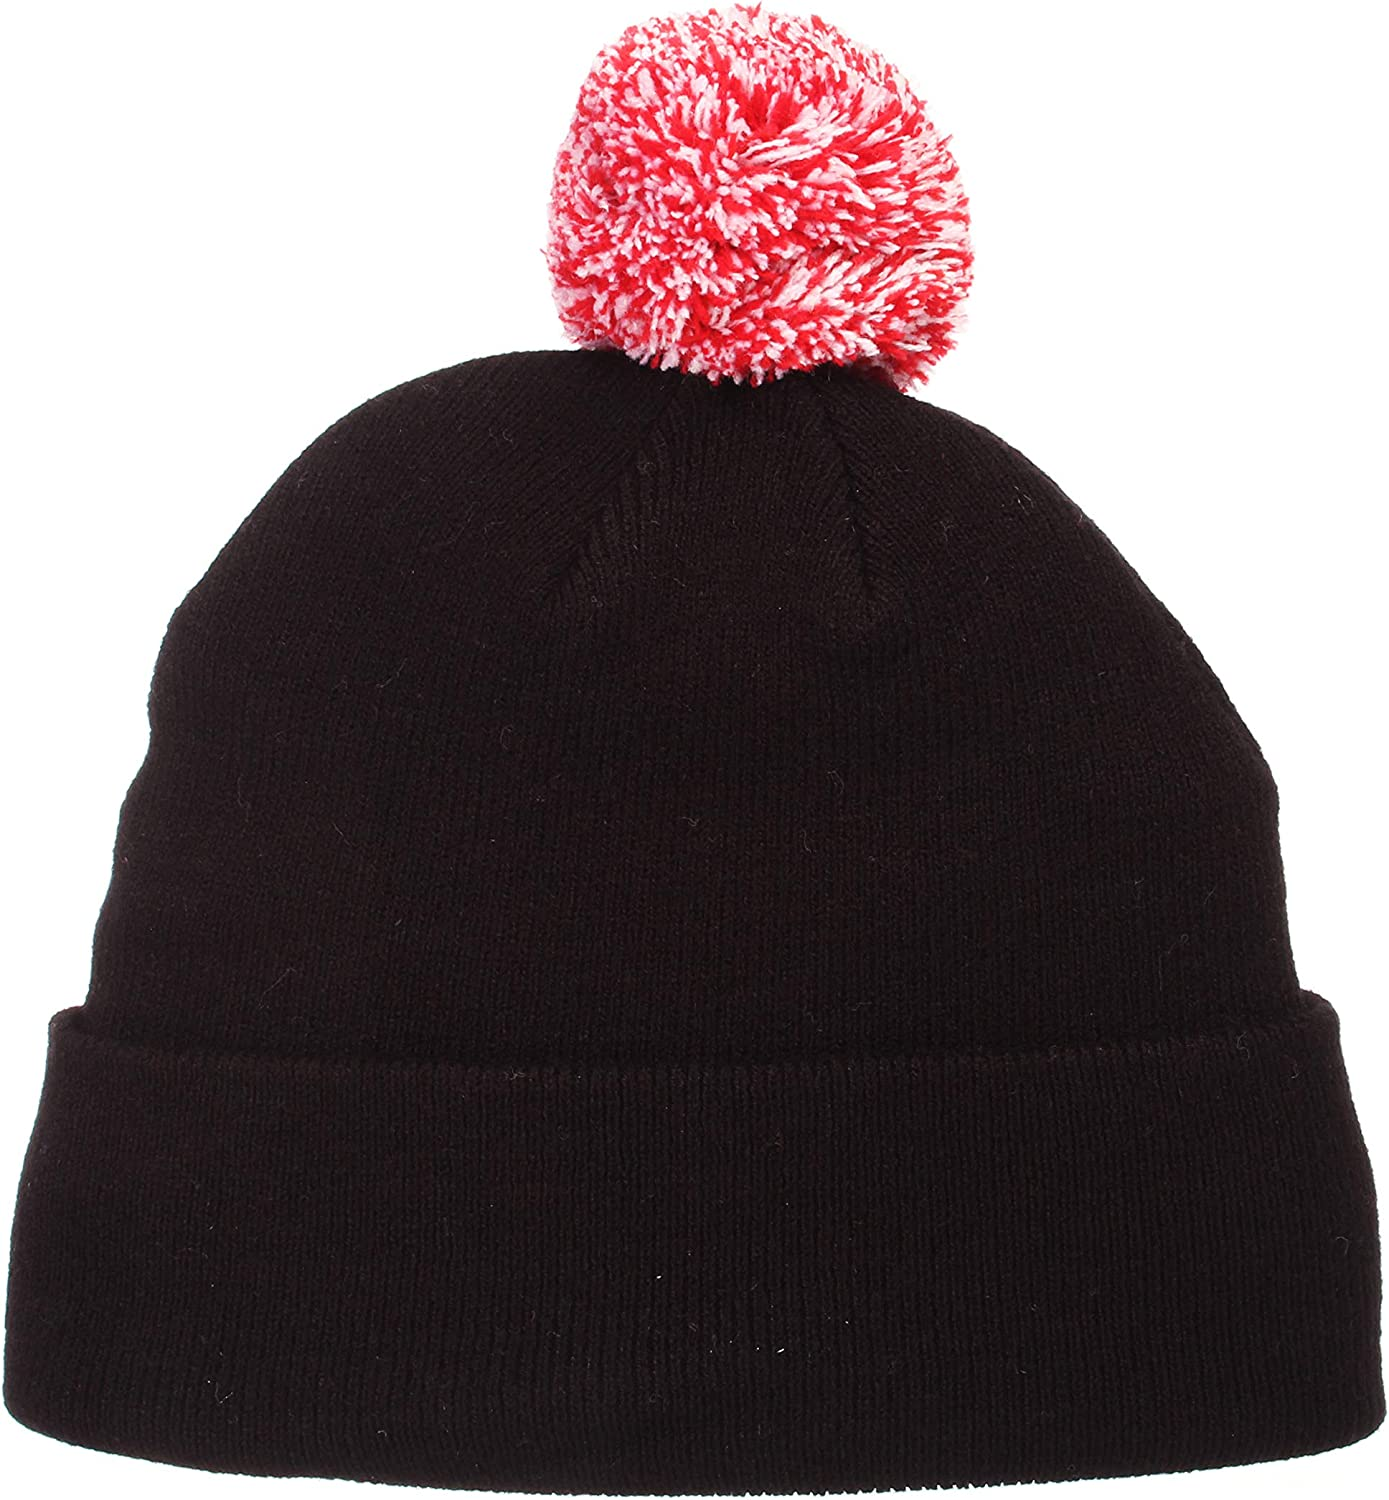 NCAA ZHATS Cuffed Winter Knit Toque Cap Zephyr Cuff Beanie Hat with POM POM